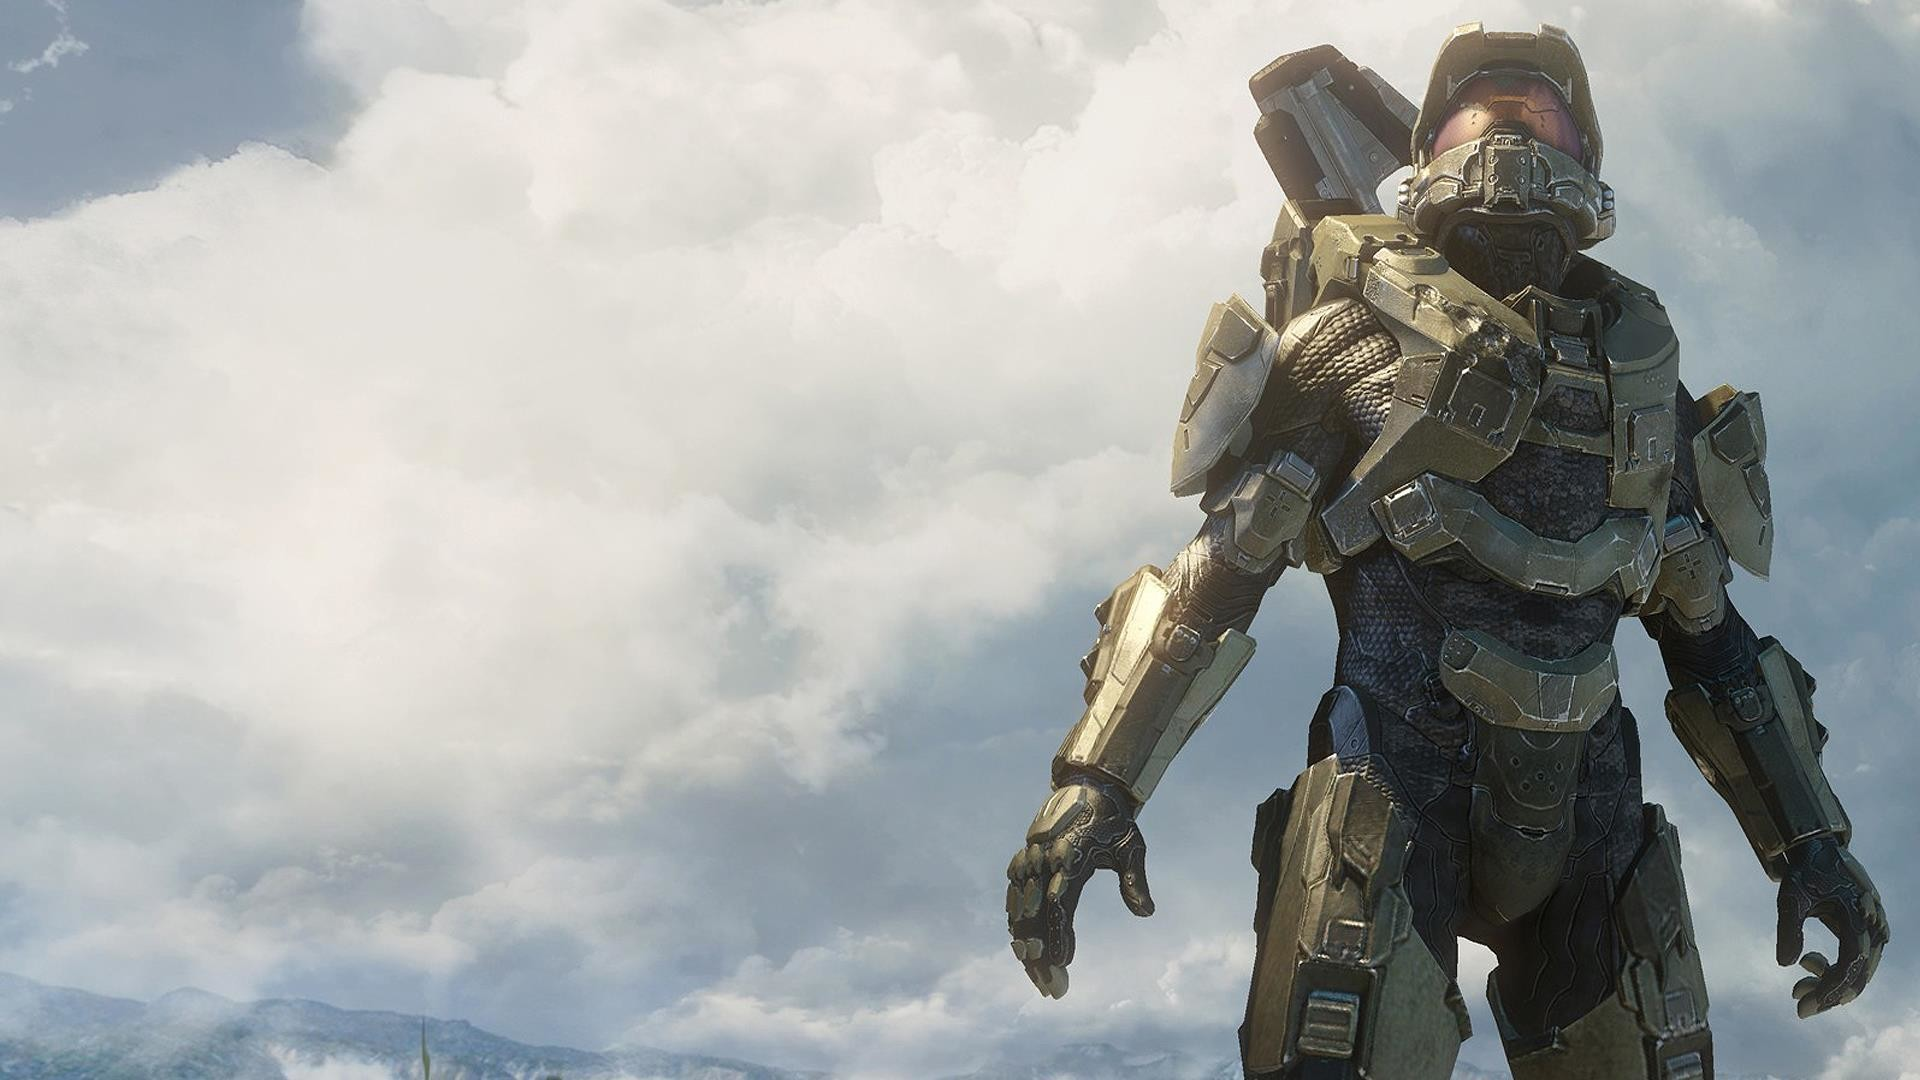 Video Game Halo 4 Wallpaper 1920?1080 Px Free Download